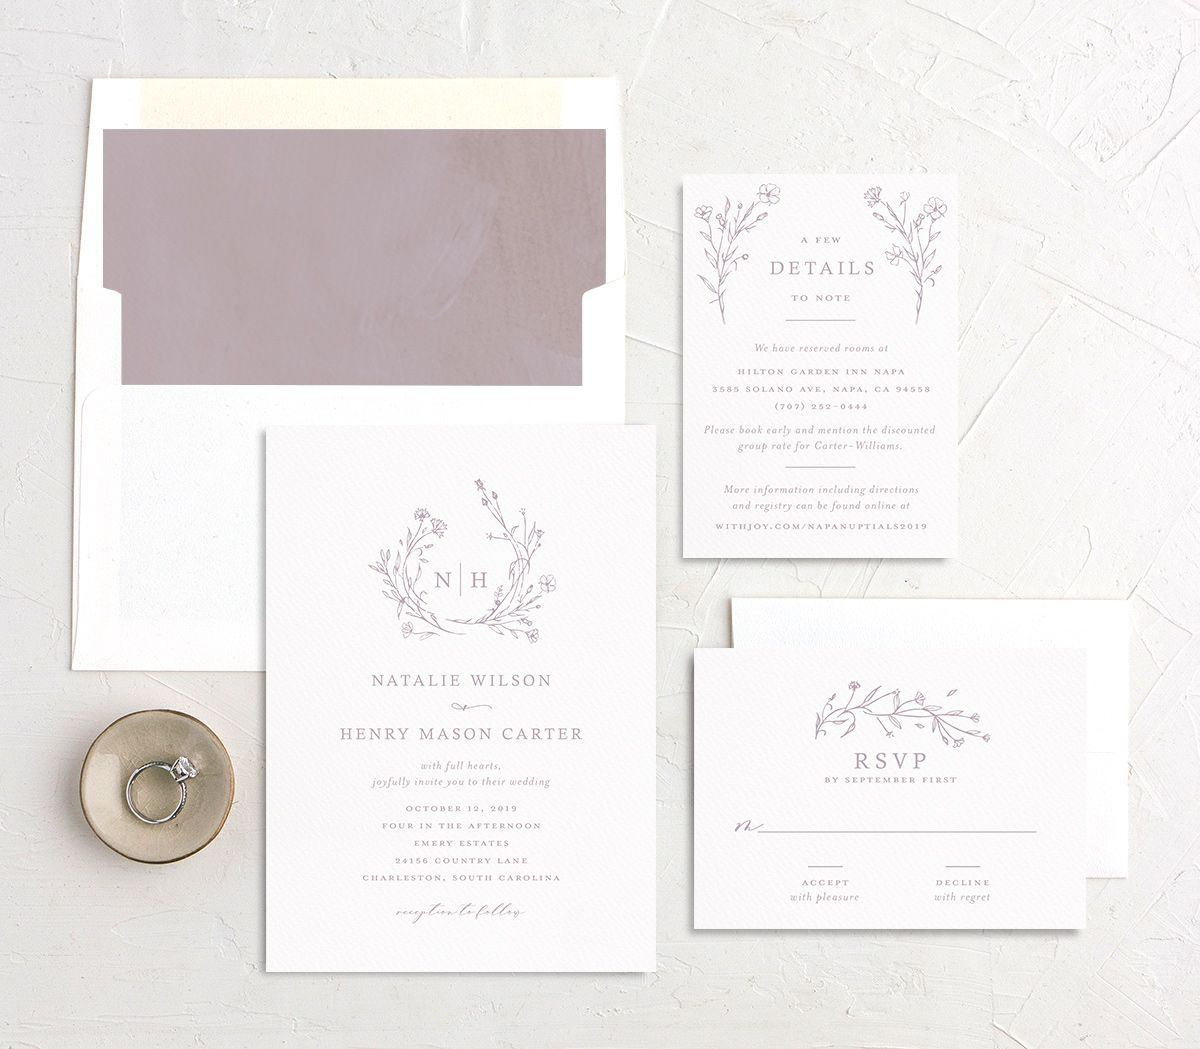 Natural Monogram wedding invite suite in purple